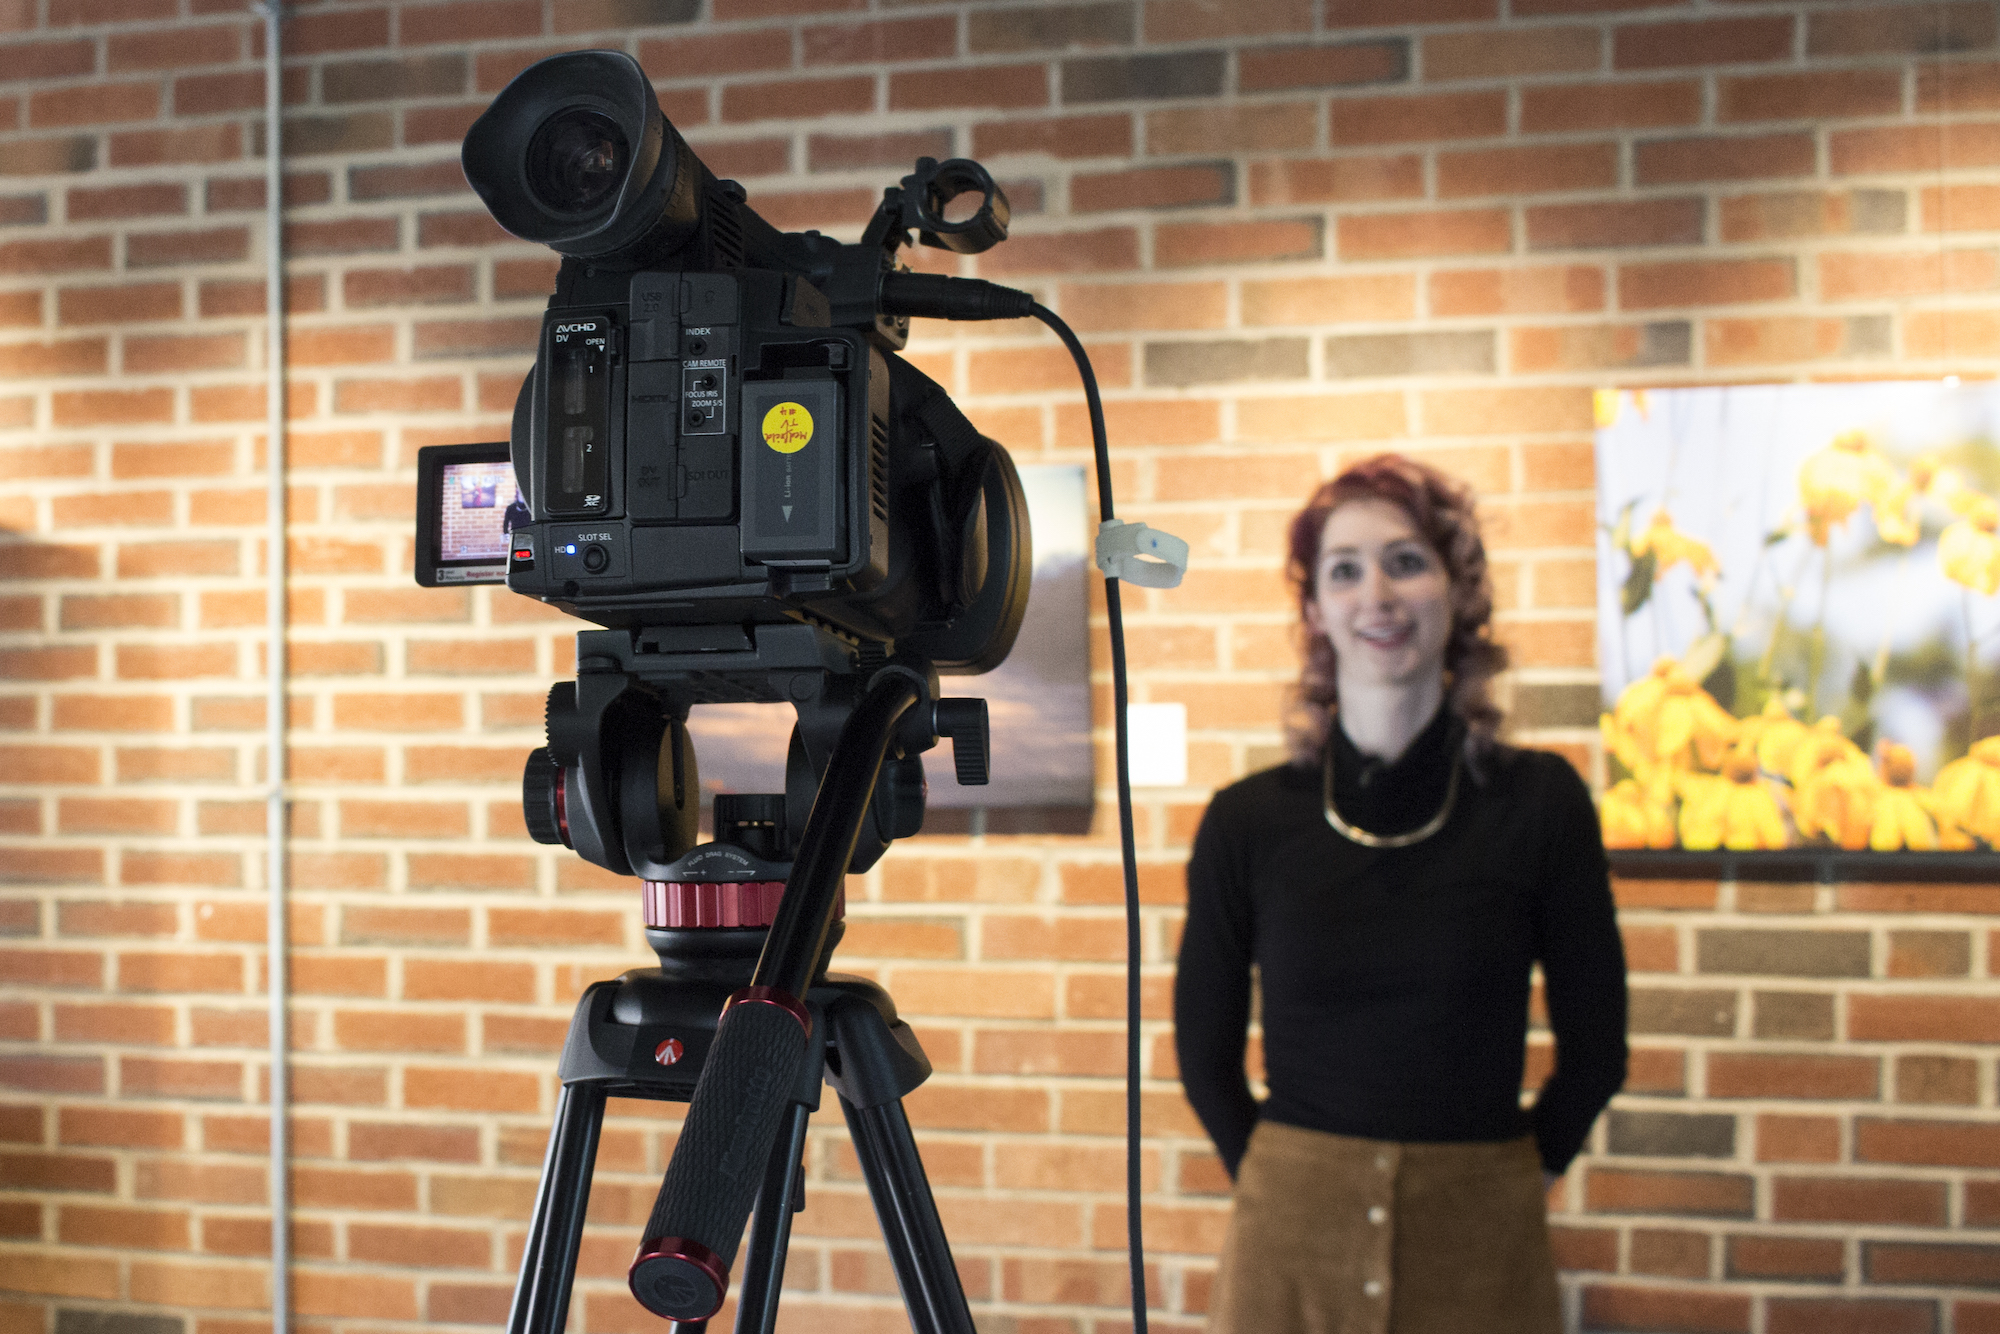 Geena Matuson interviewed for her solo show at Medfield TV, 2016.